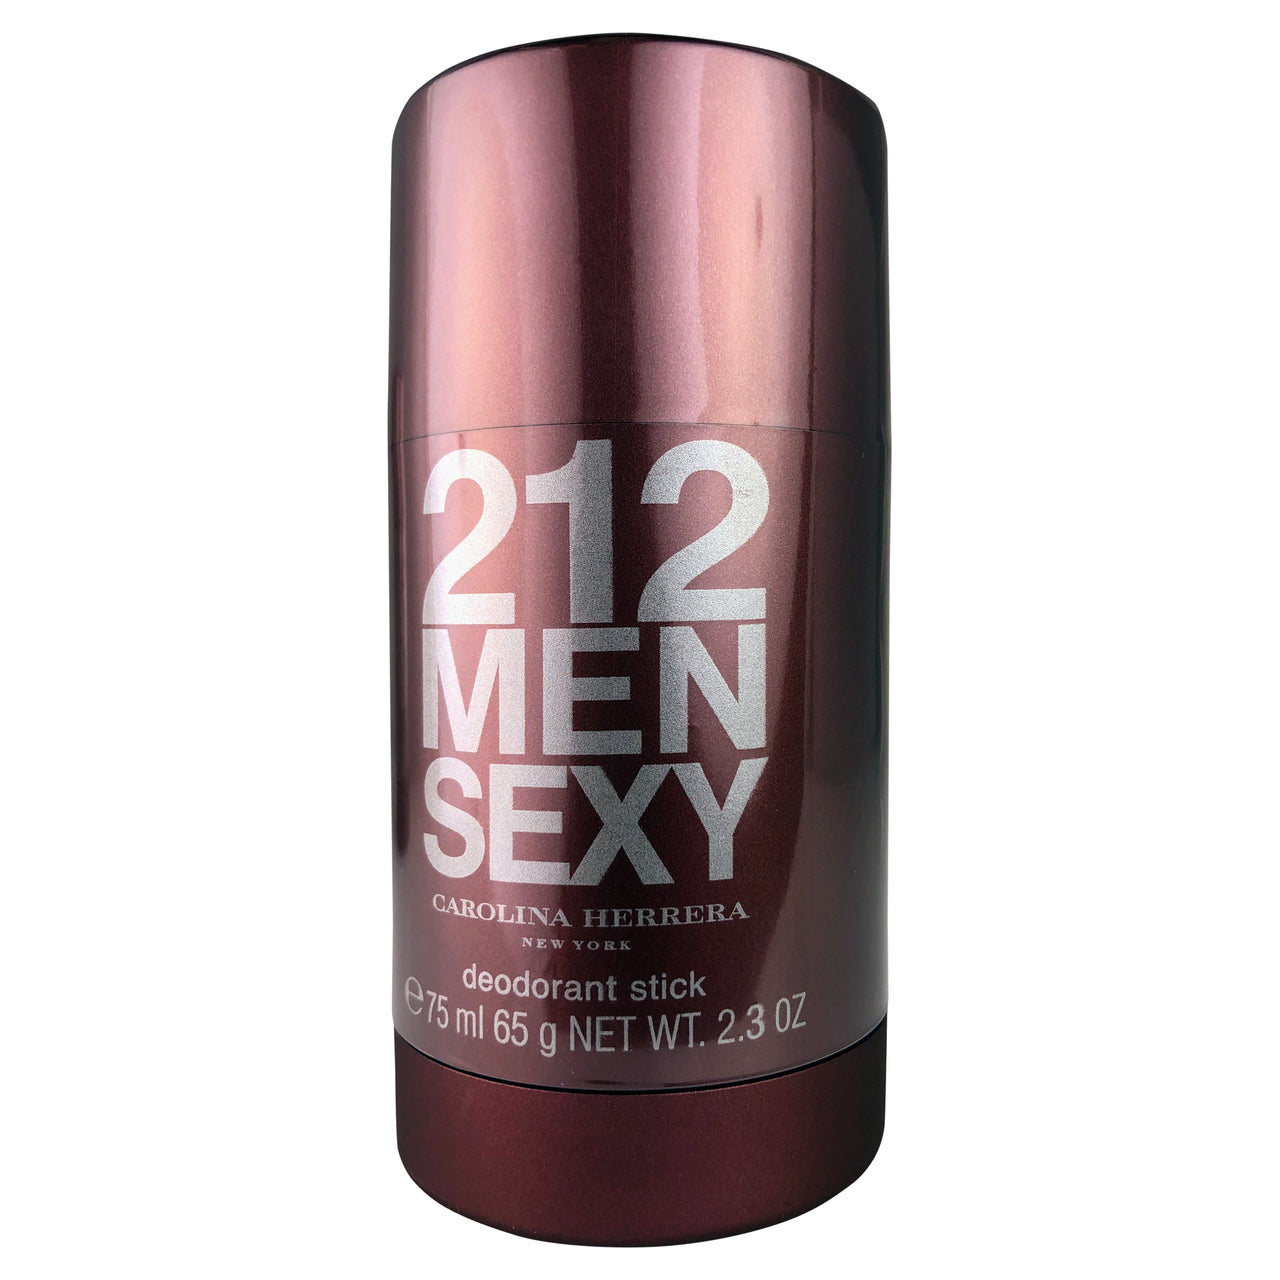 212 Men Sexy By Carolina Herrera Deodorant Stick 2.3 oz